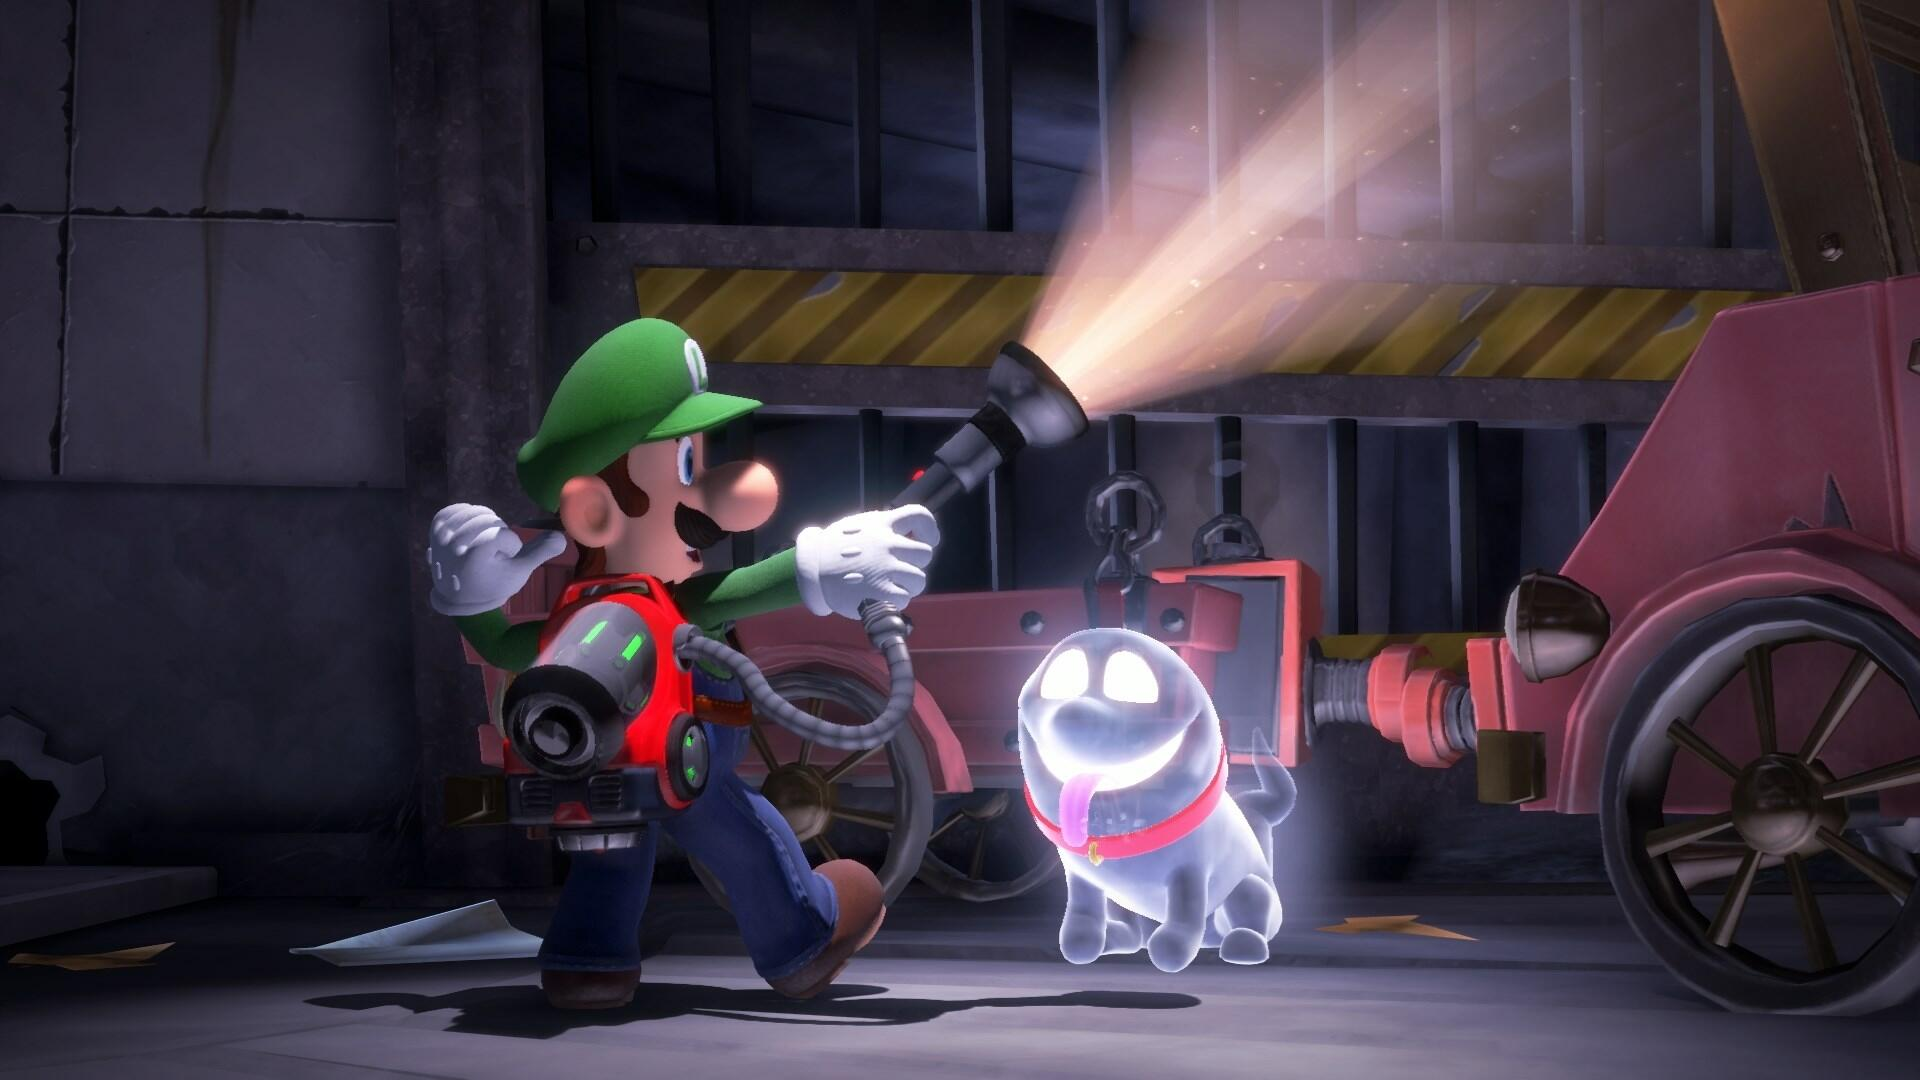 Luigis Mansion 3 Achievements How To Check Your